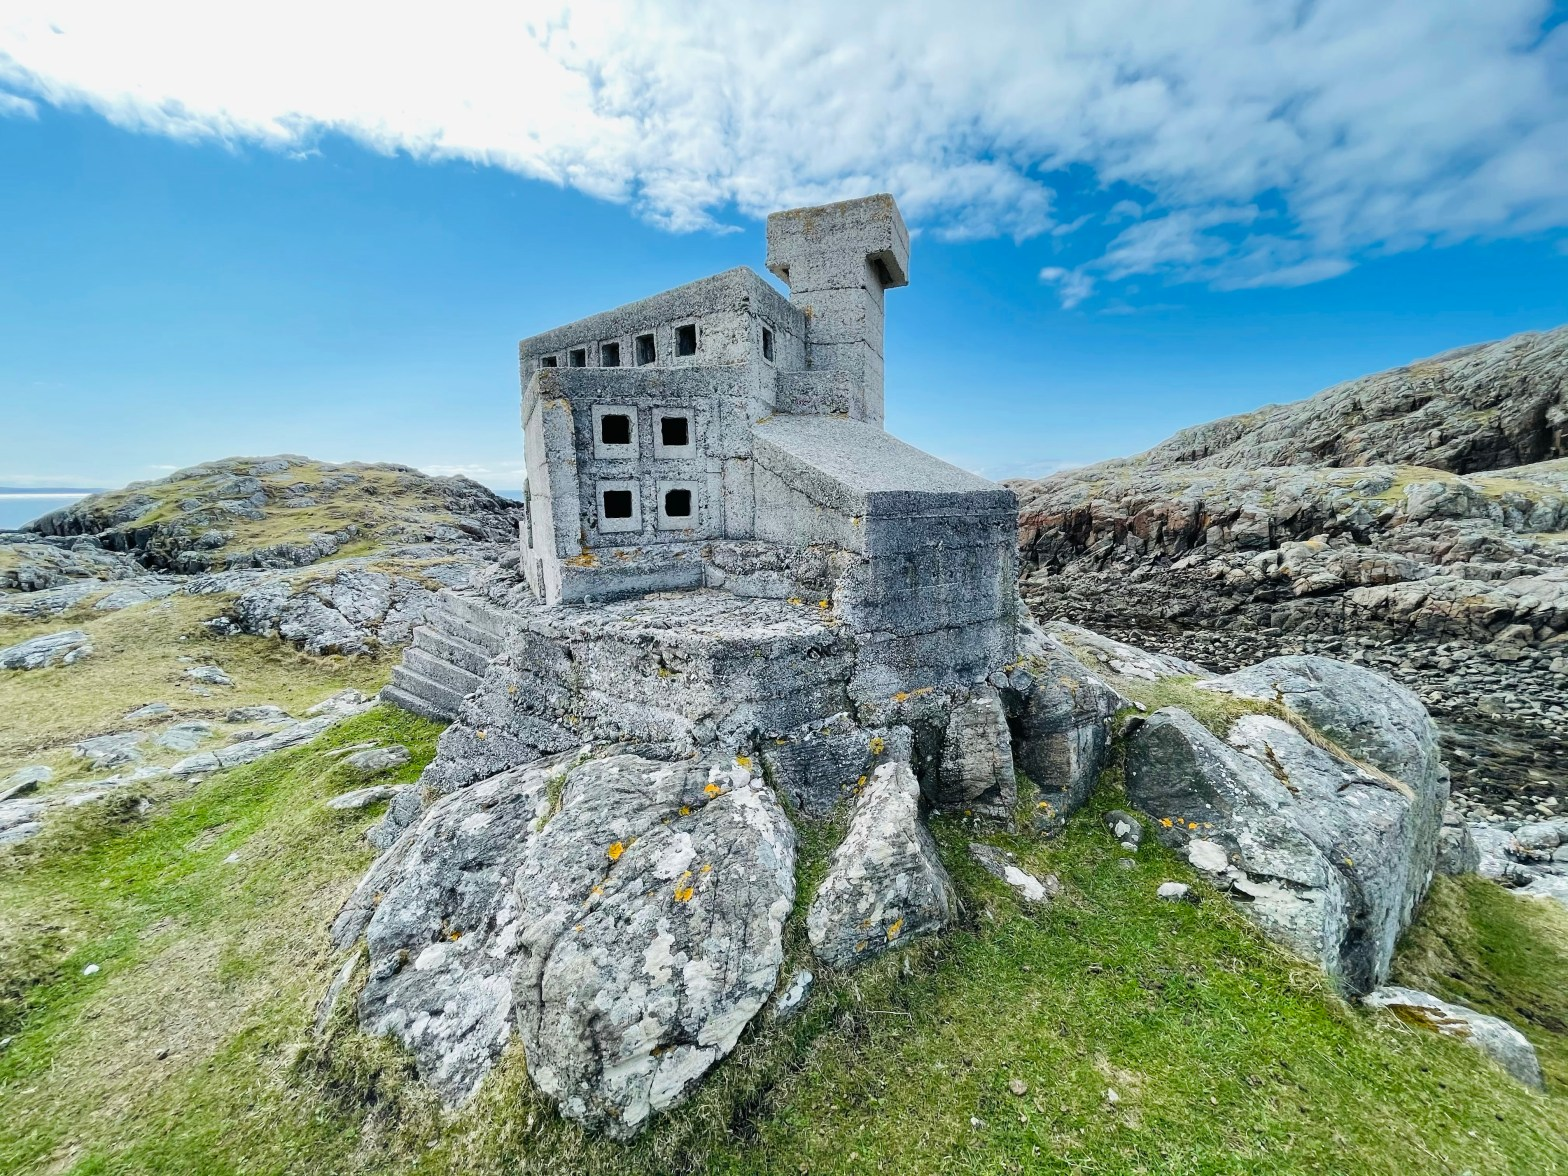 Hermits castle at Achmelvich